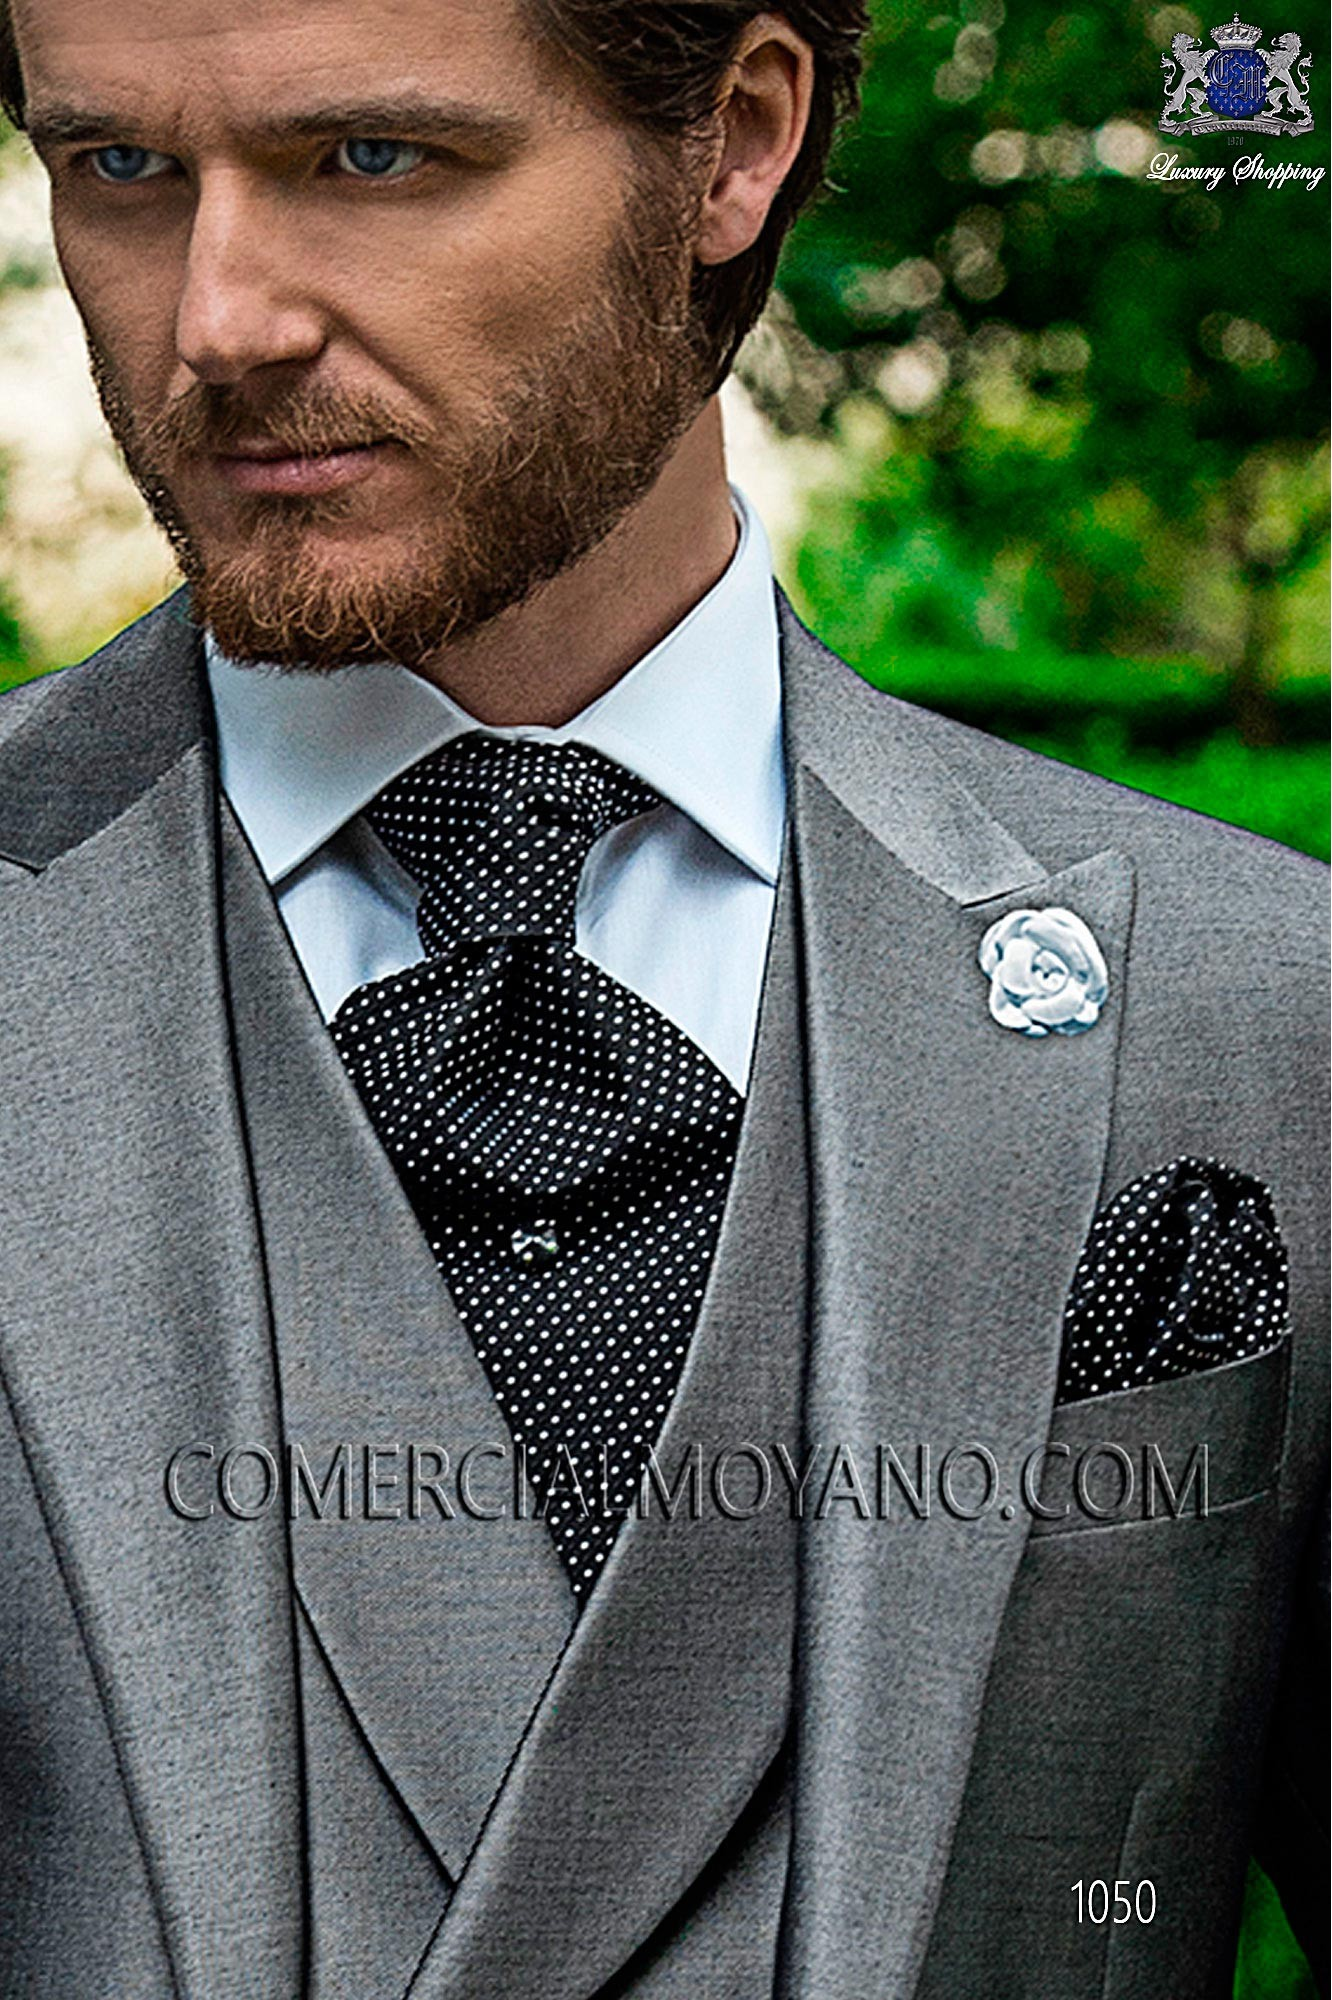 Italian fashion pearl gray men wedding suit, model: 1050 Ottavio Nuccio Gala Fashion Collection